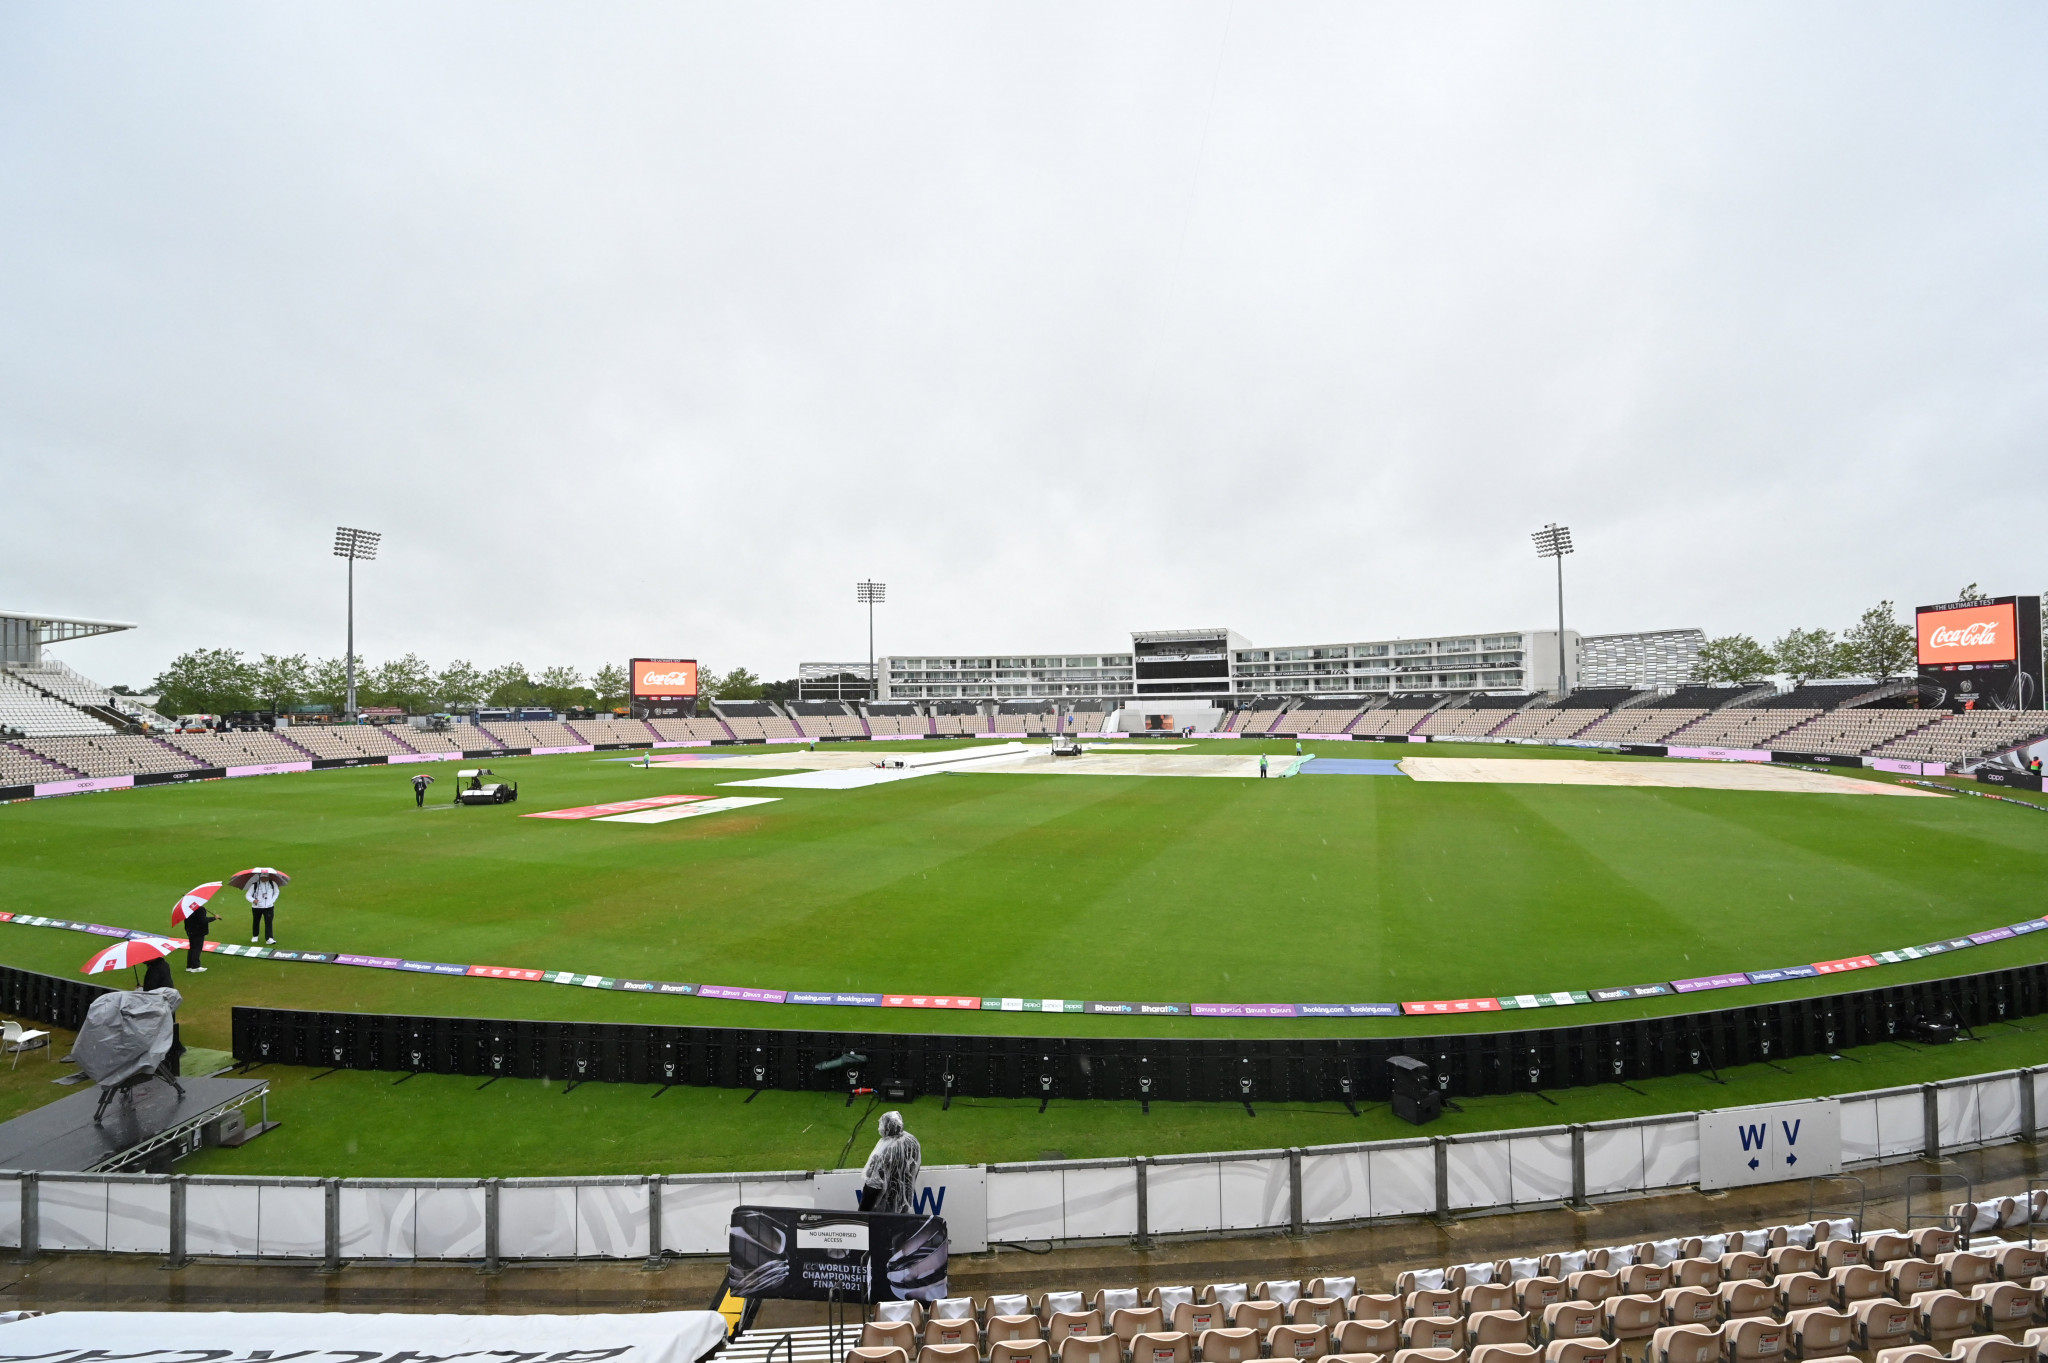 Southampton's Ageas Bowl is due to host the first World Test Championship final between New Zealand and India ©Getty Images